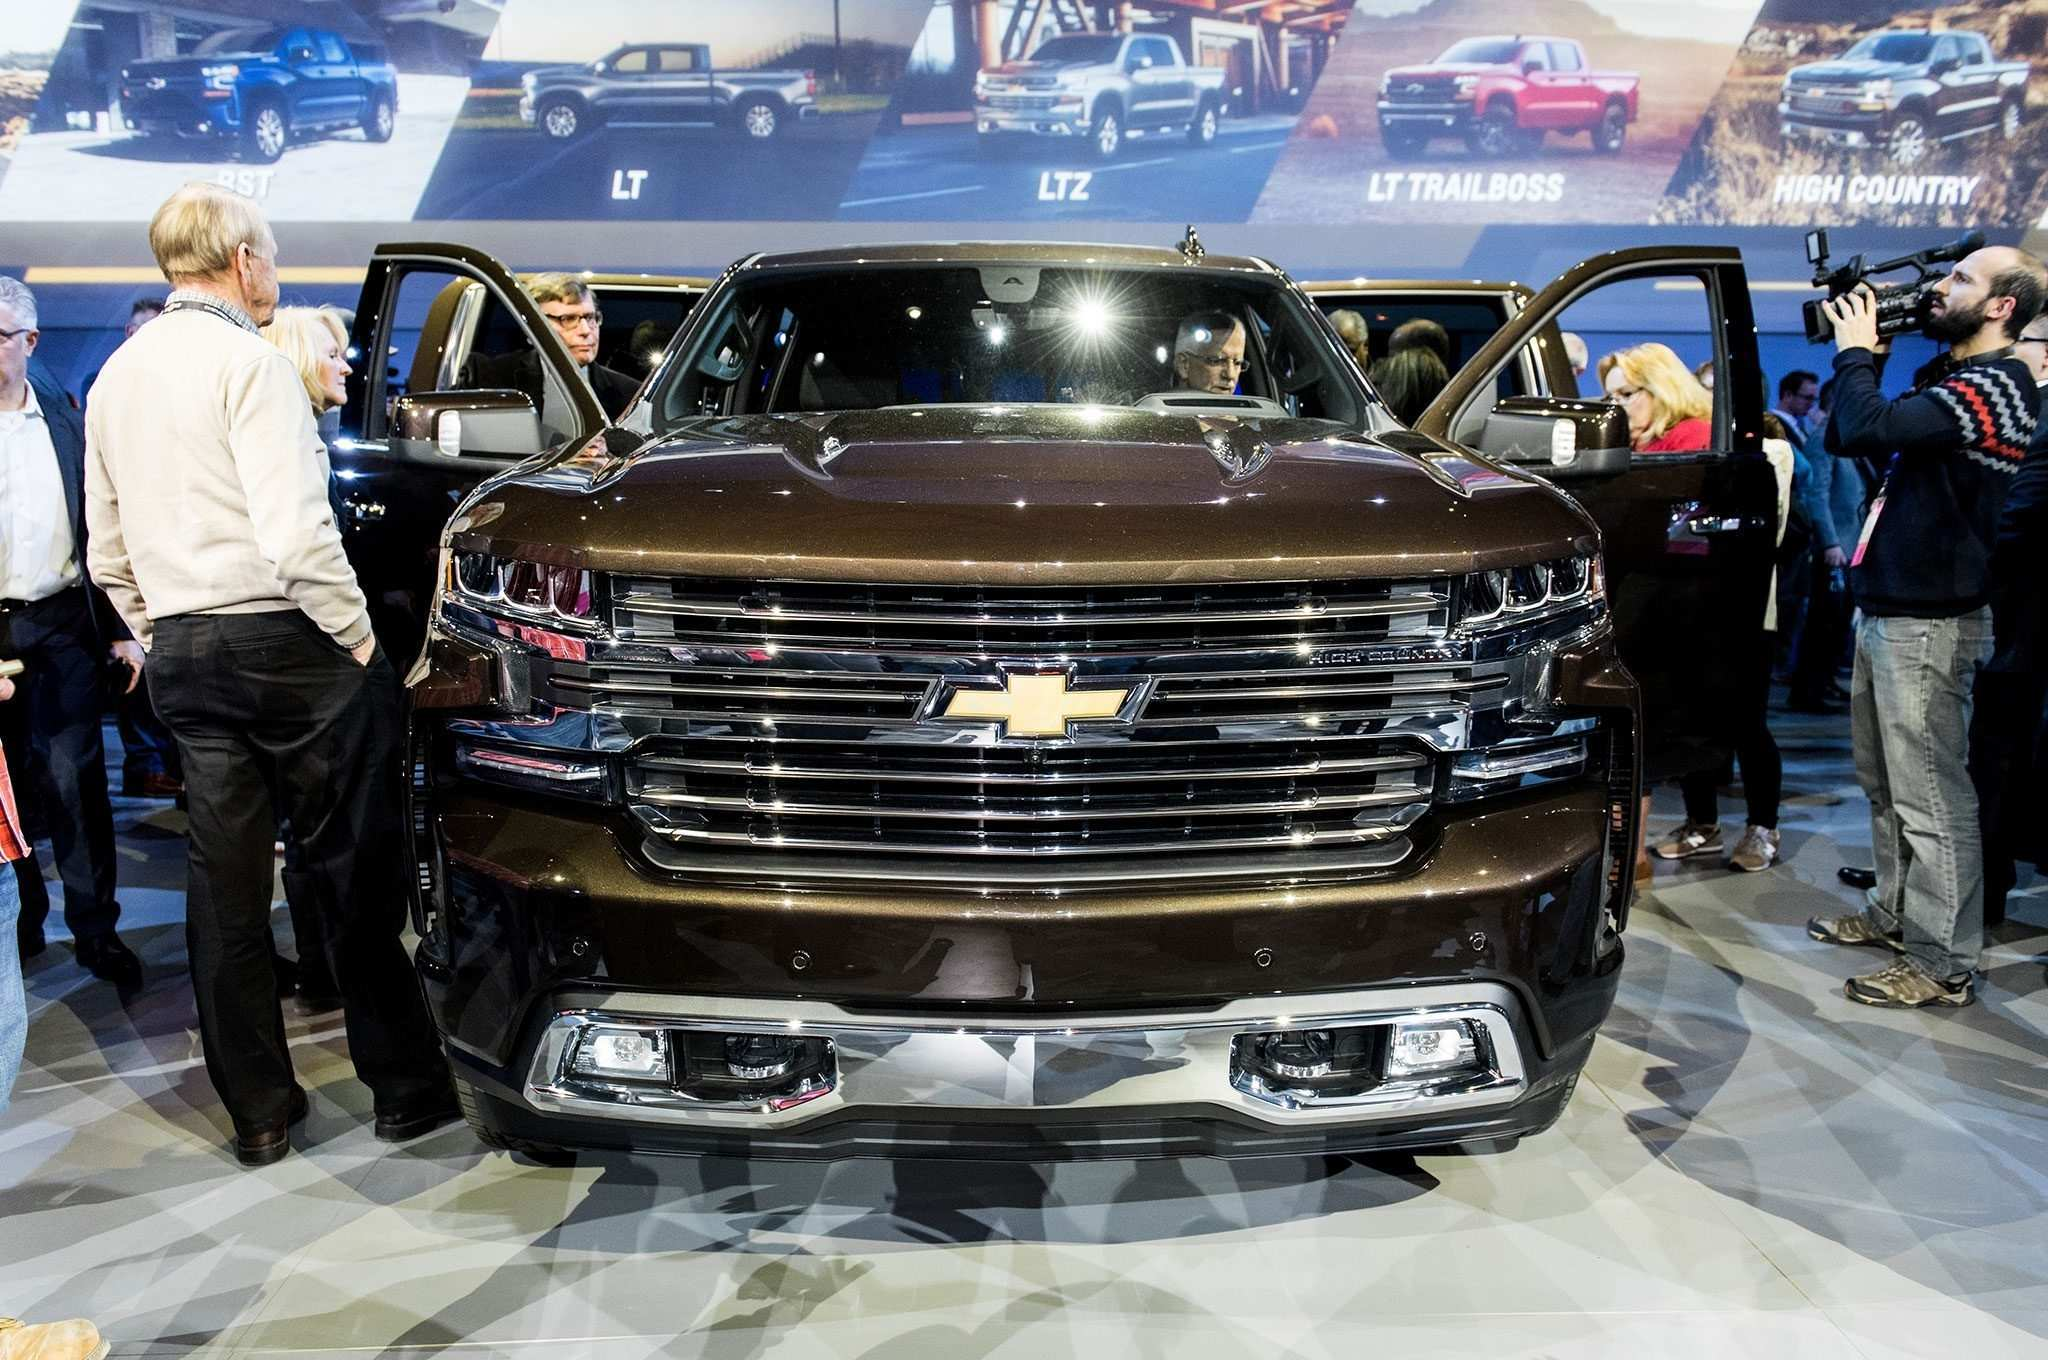 28 All New New Chevrolet 2019 Tahoe Concept Images by New Chevrolet 2019 Tahoe Concept